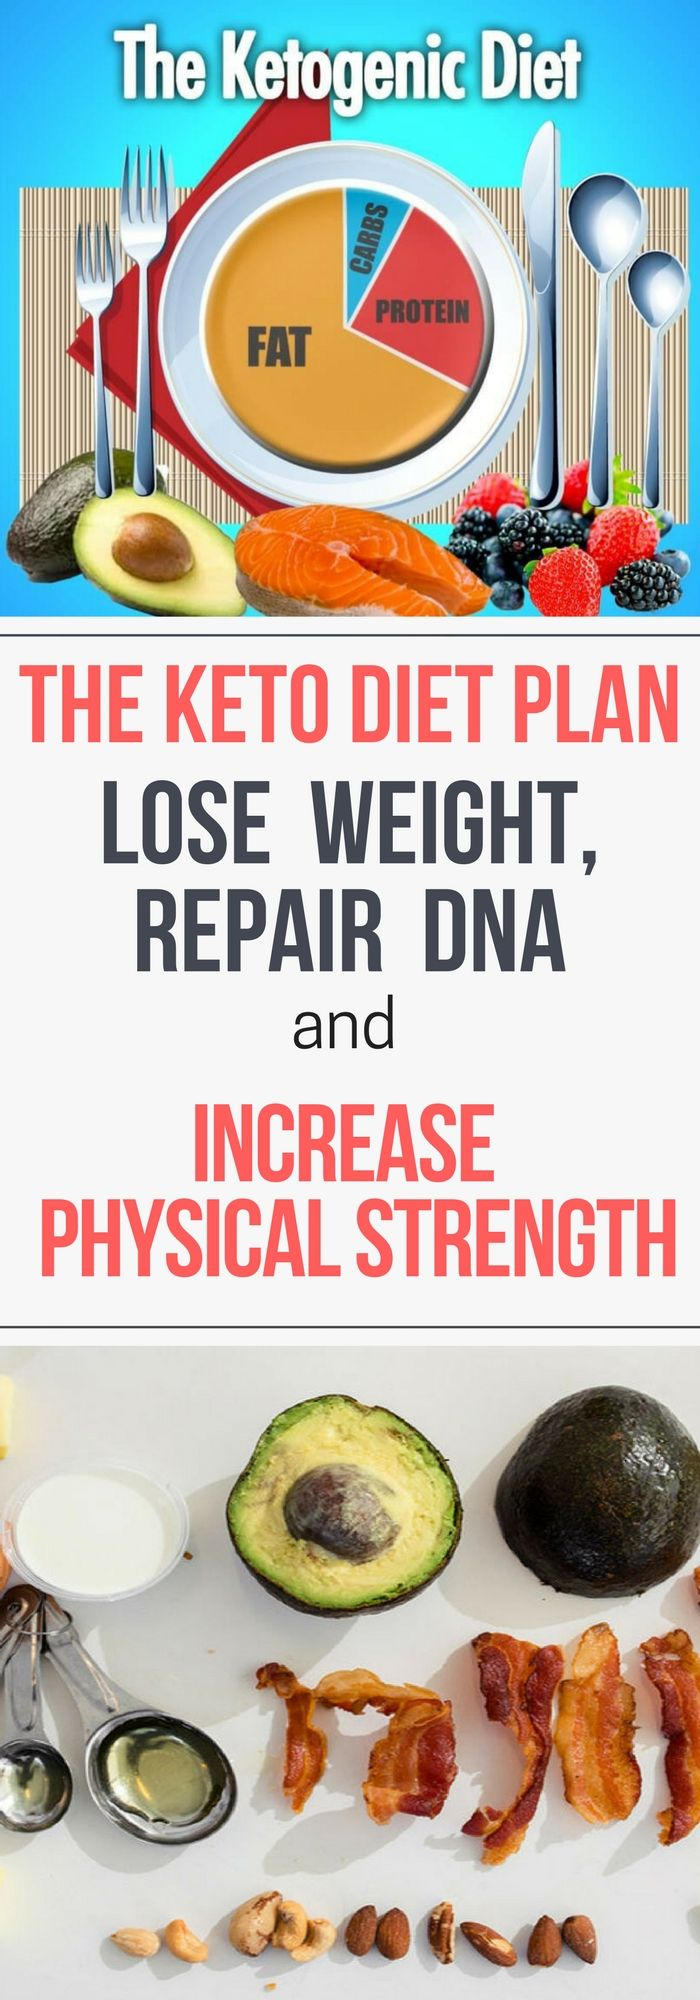 What is the medical weight loss diet